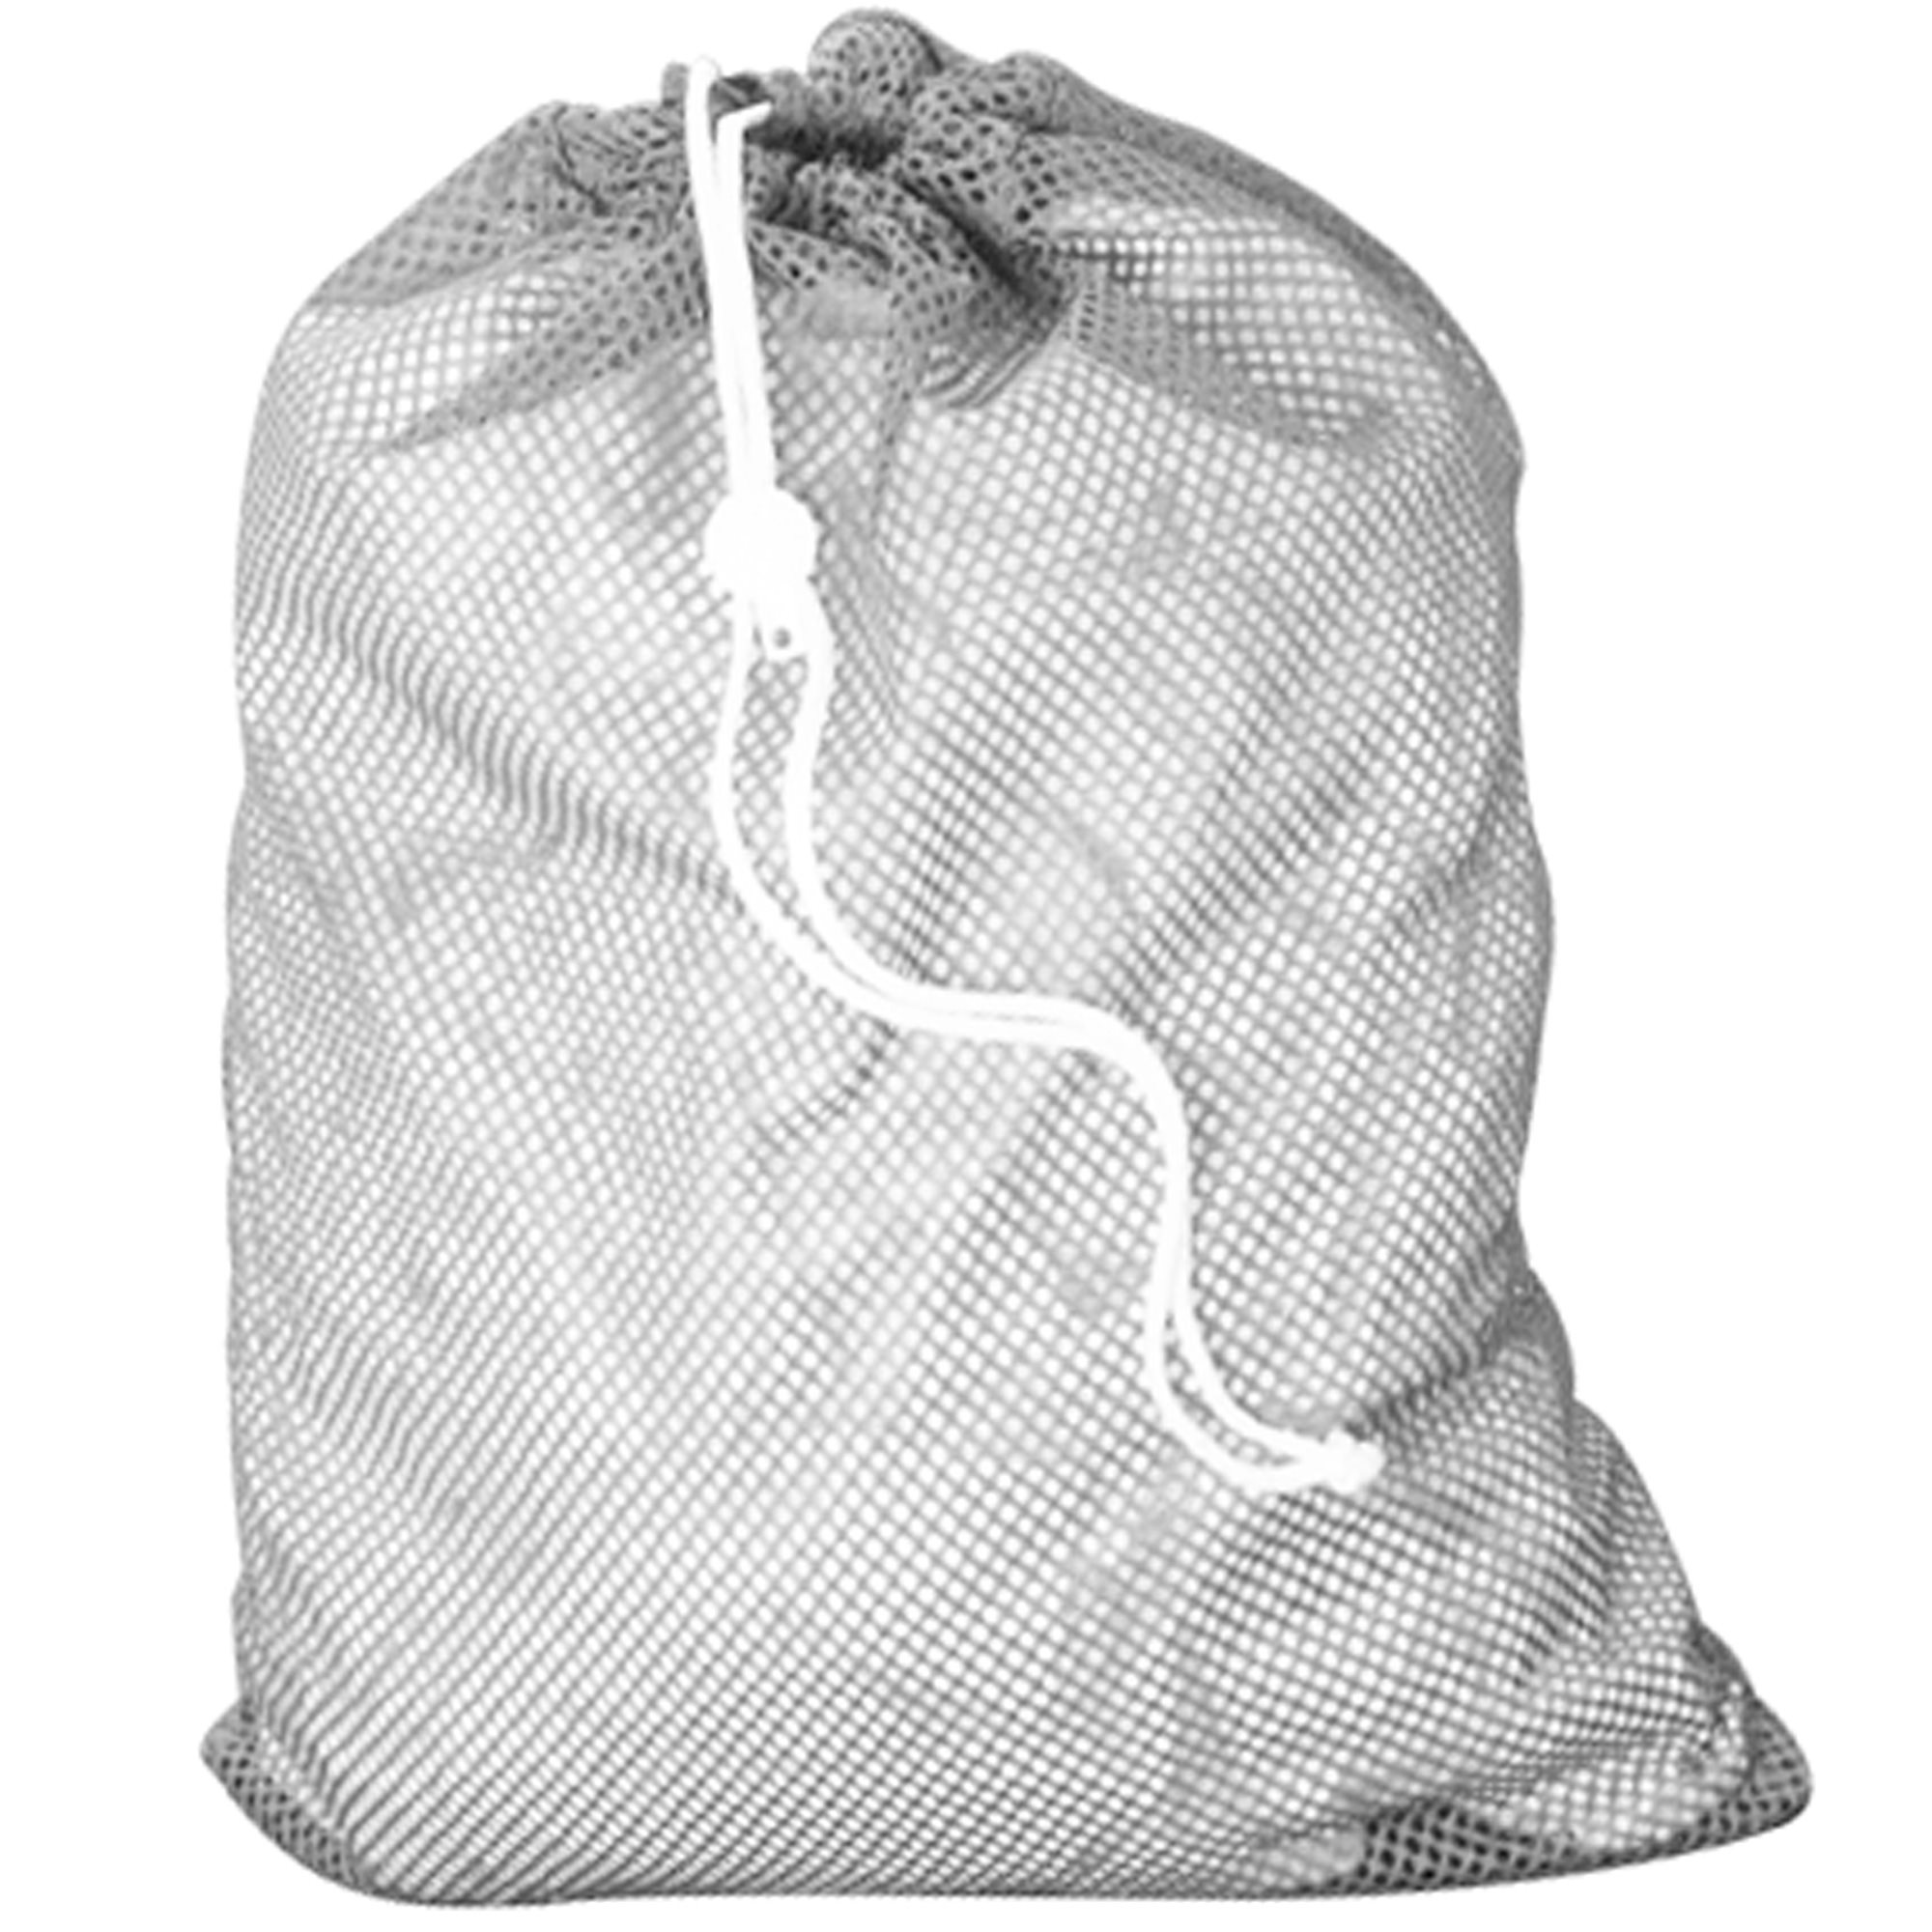 "Mesh Laundry / Equipment Bags - Heavy Mesh, 36"" x 40"""